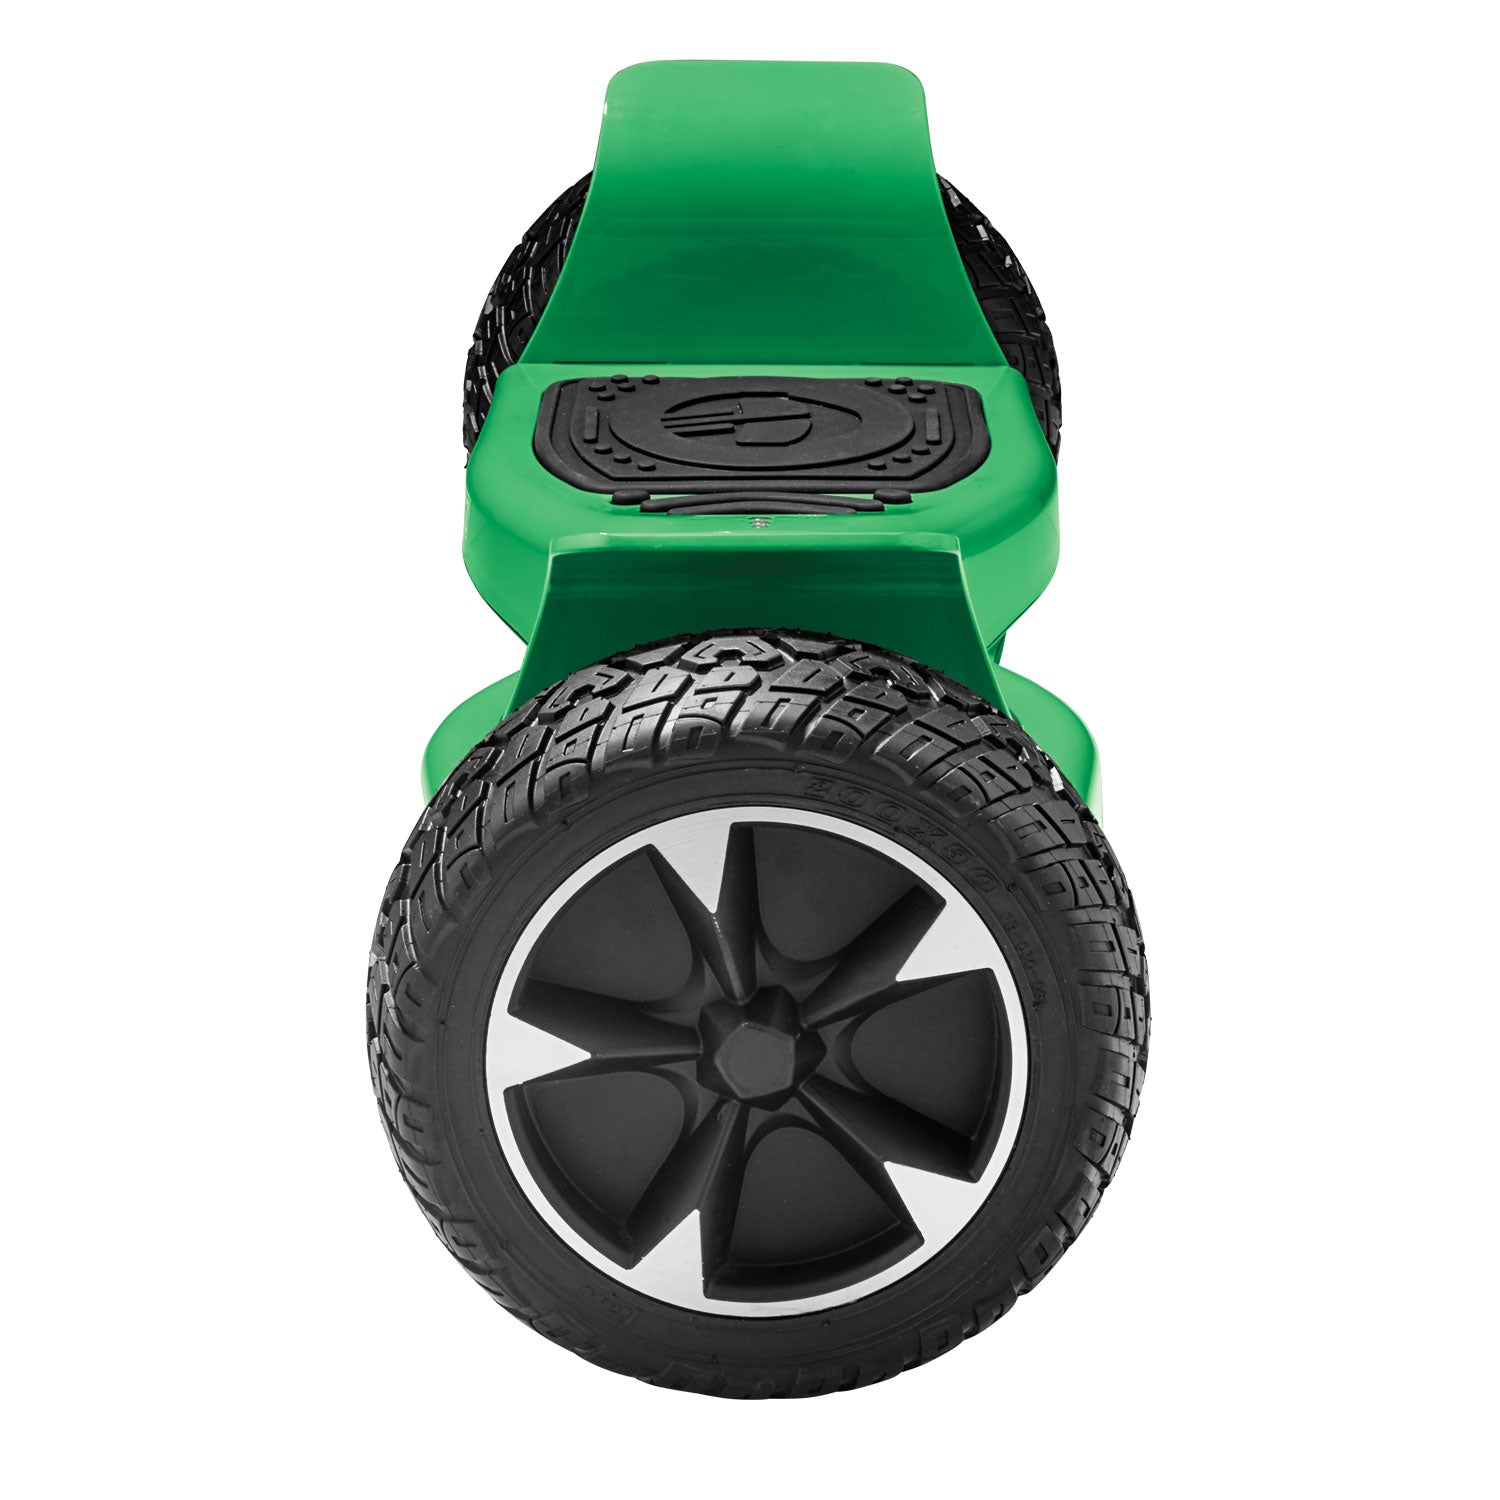 green xl off road hoverboard side view